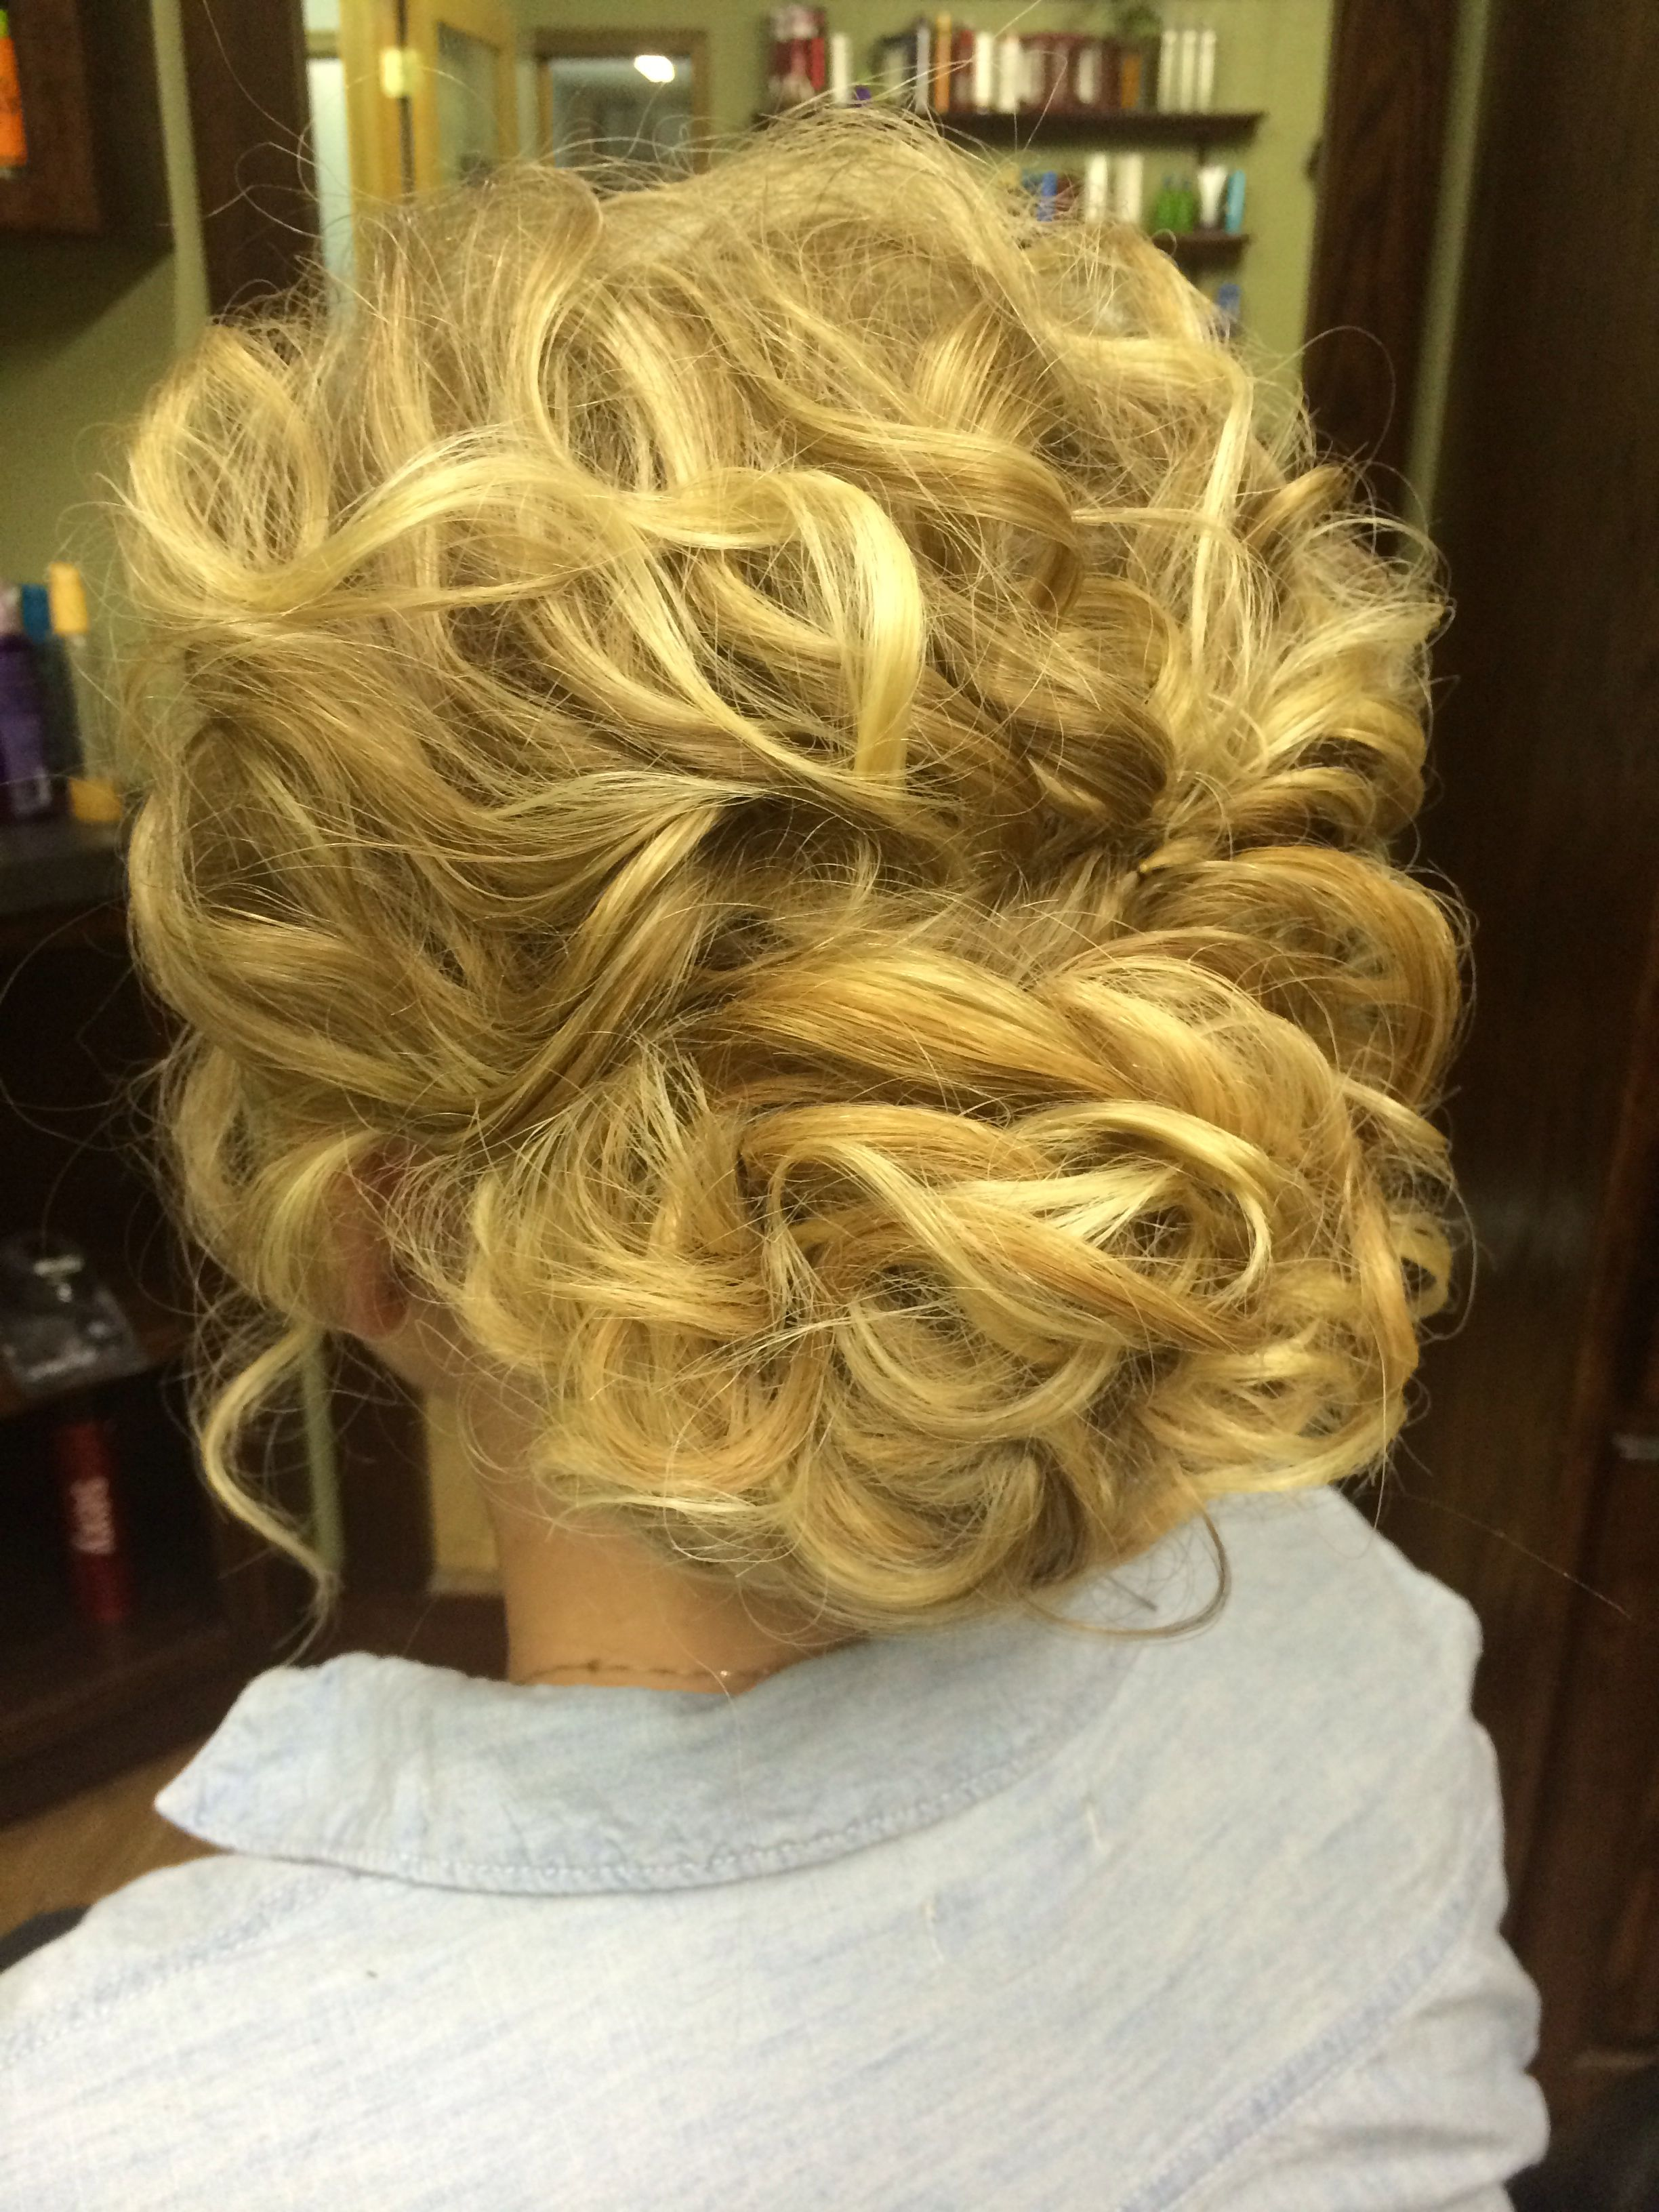 Bridesmaid hair tousled curly loose updo for when my hair is crazy